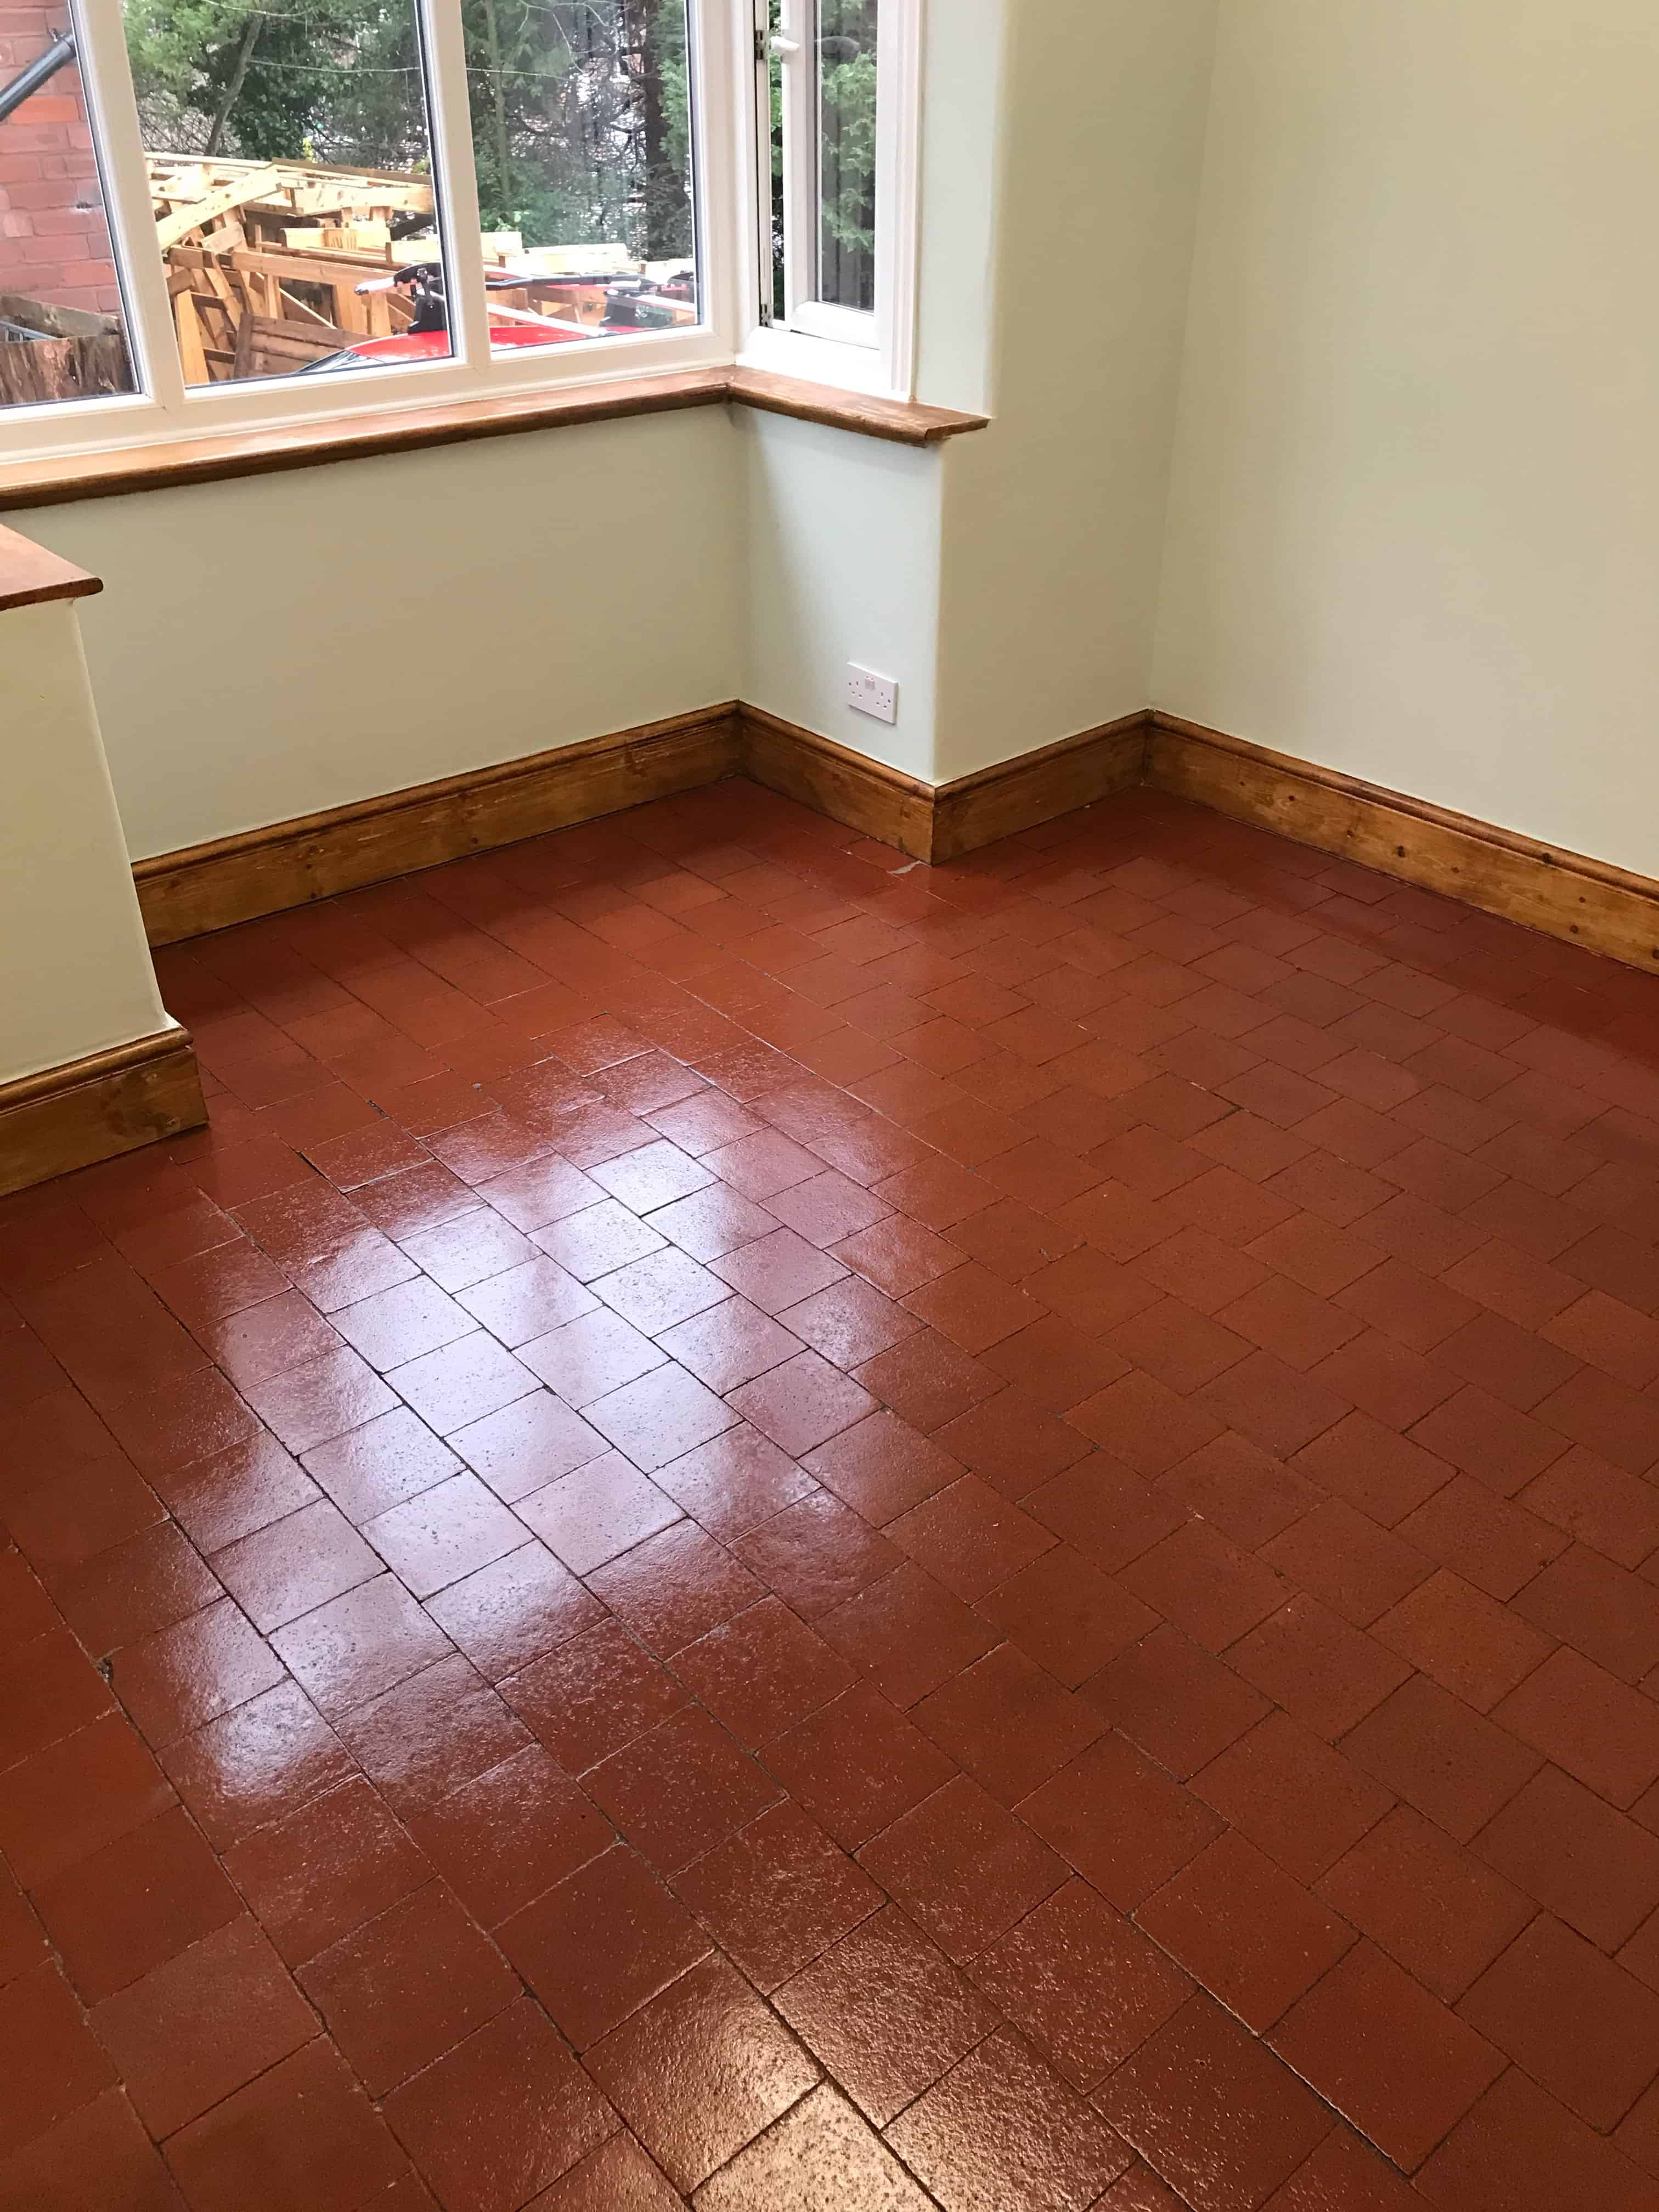 Quarry Tile Floor After Cleaning Sealing Stafford